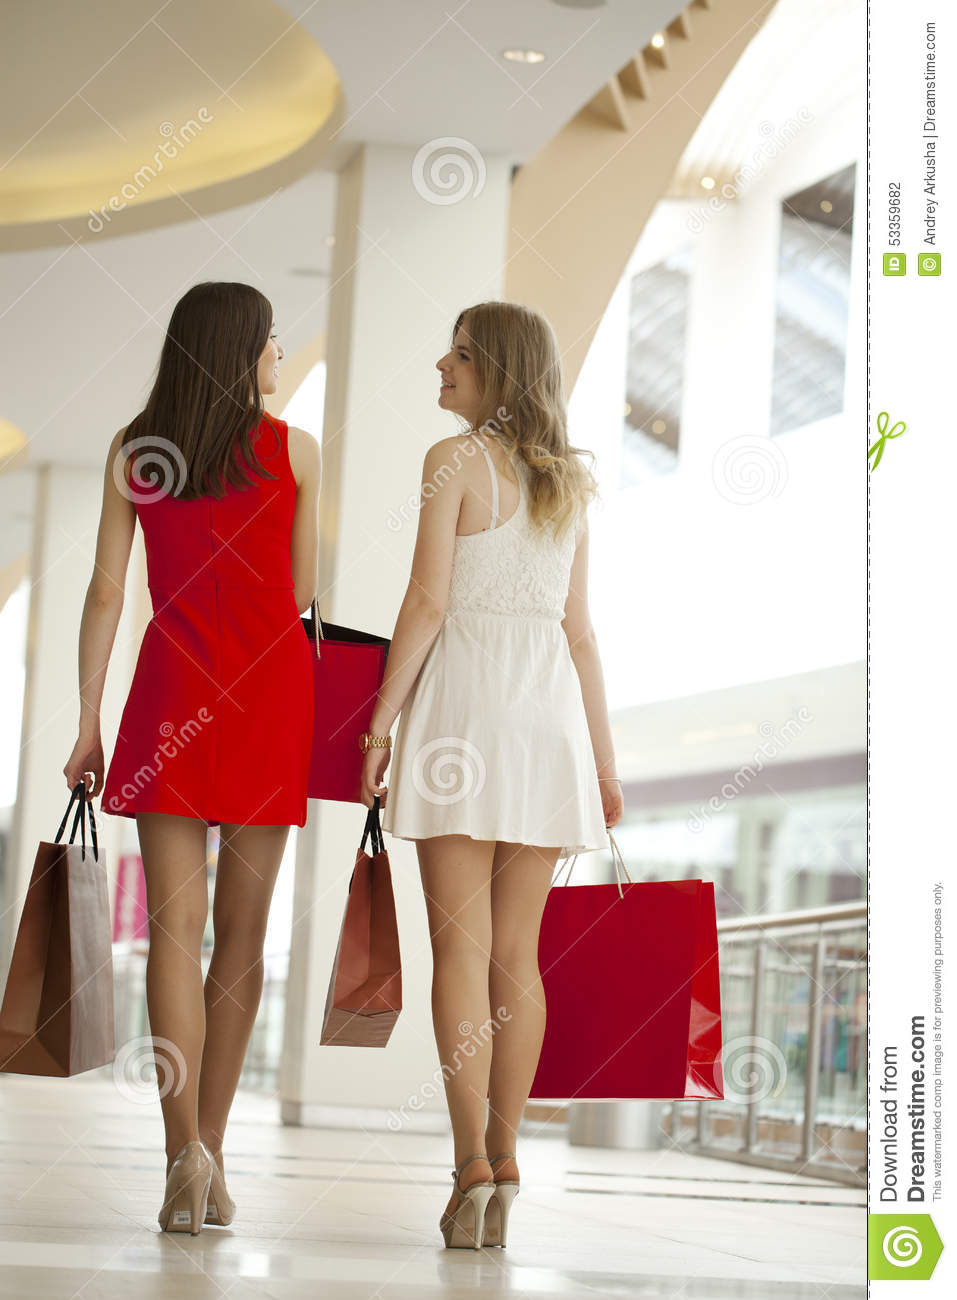 shopping mall 2 essay Advantages & disadvantages of shopping centers | mall | tinobusiness the mall culture has become a big business, as they have become multi-story structures that house a large number of shops selling various products and services.